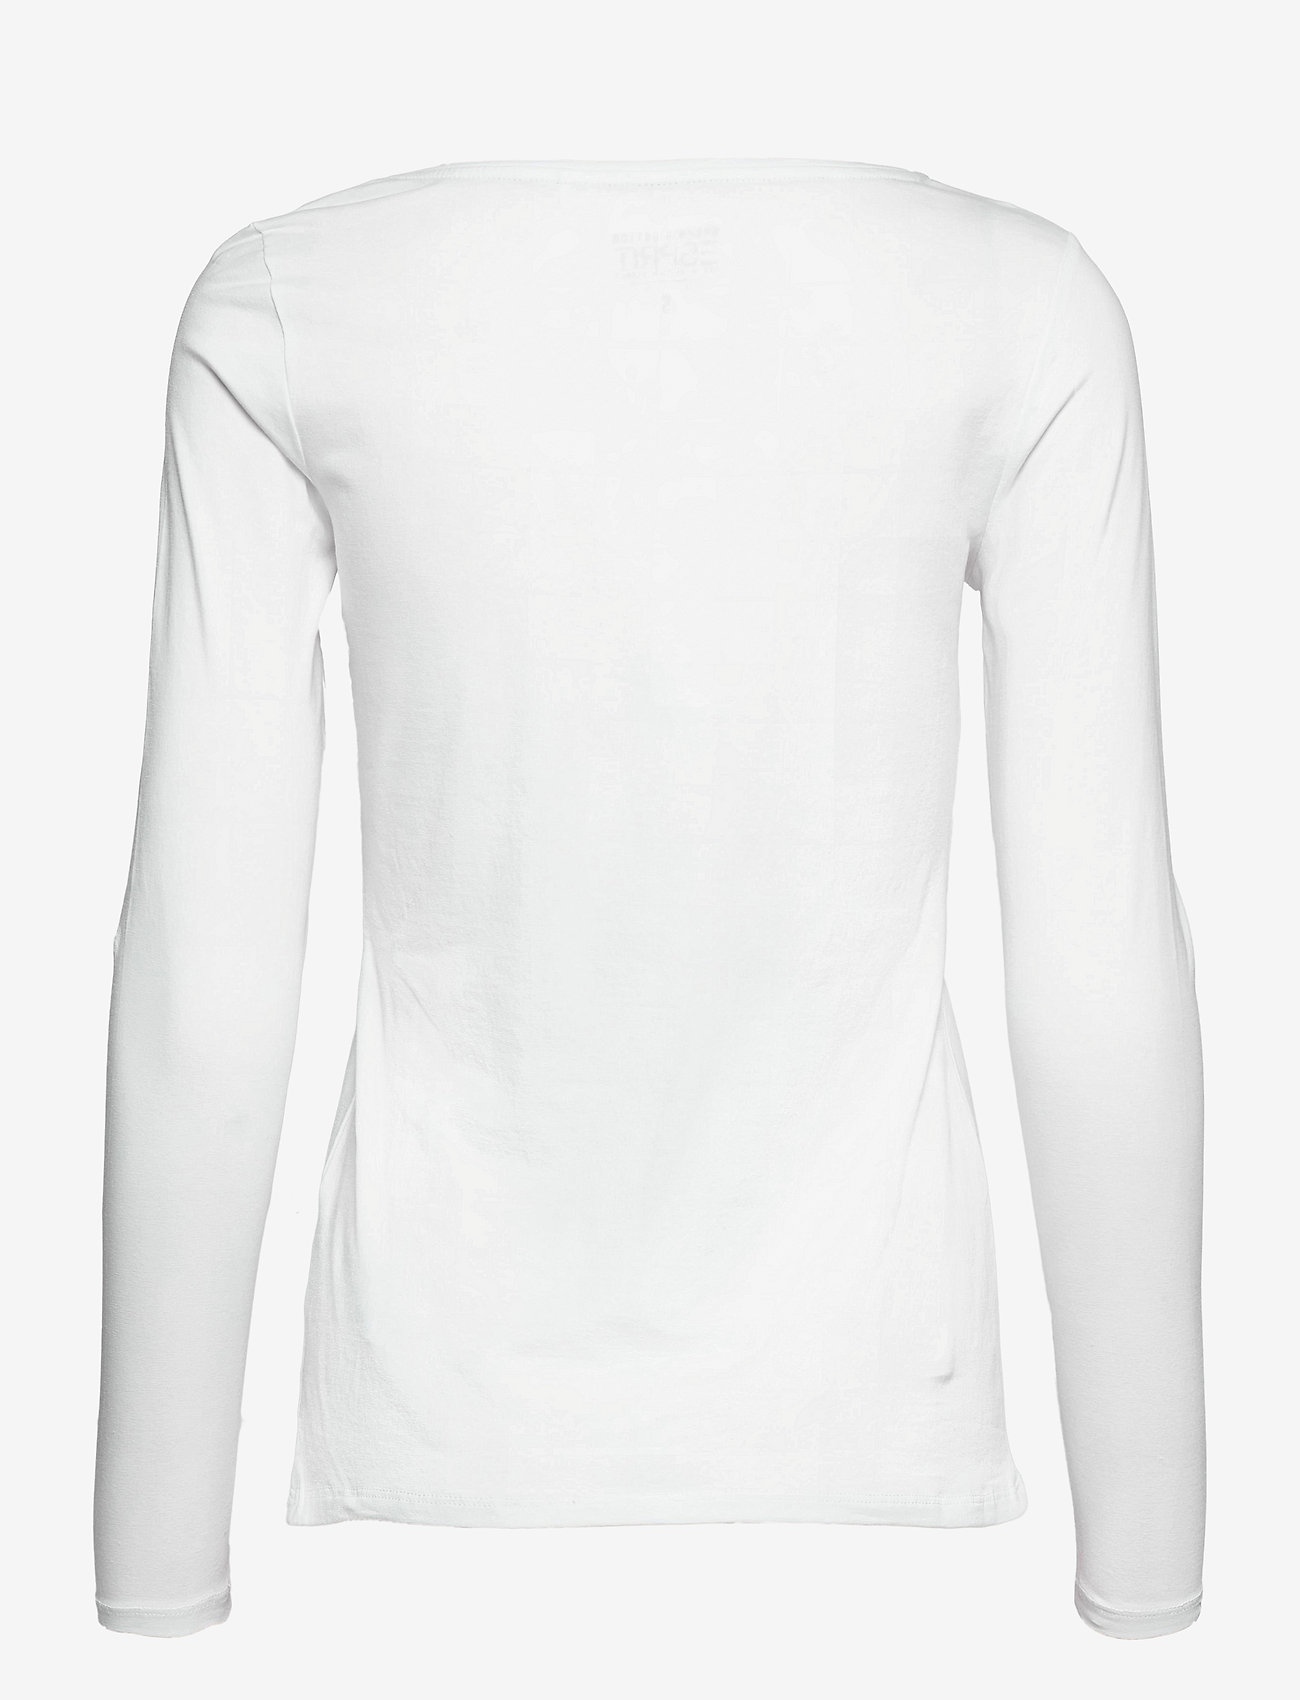 Esprit Casual - T-Shirts - long-sleeved tops - white - 1